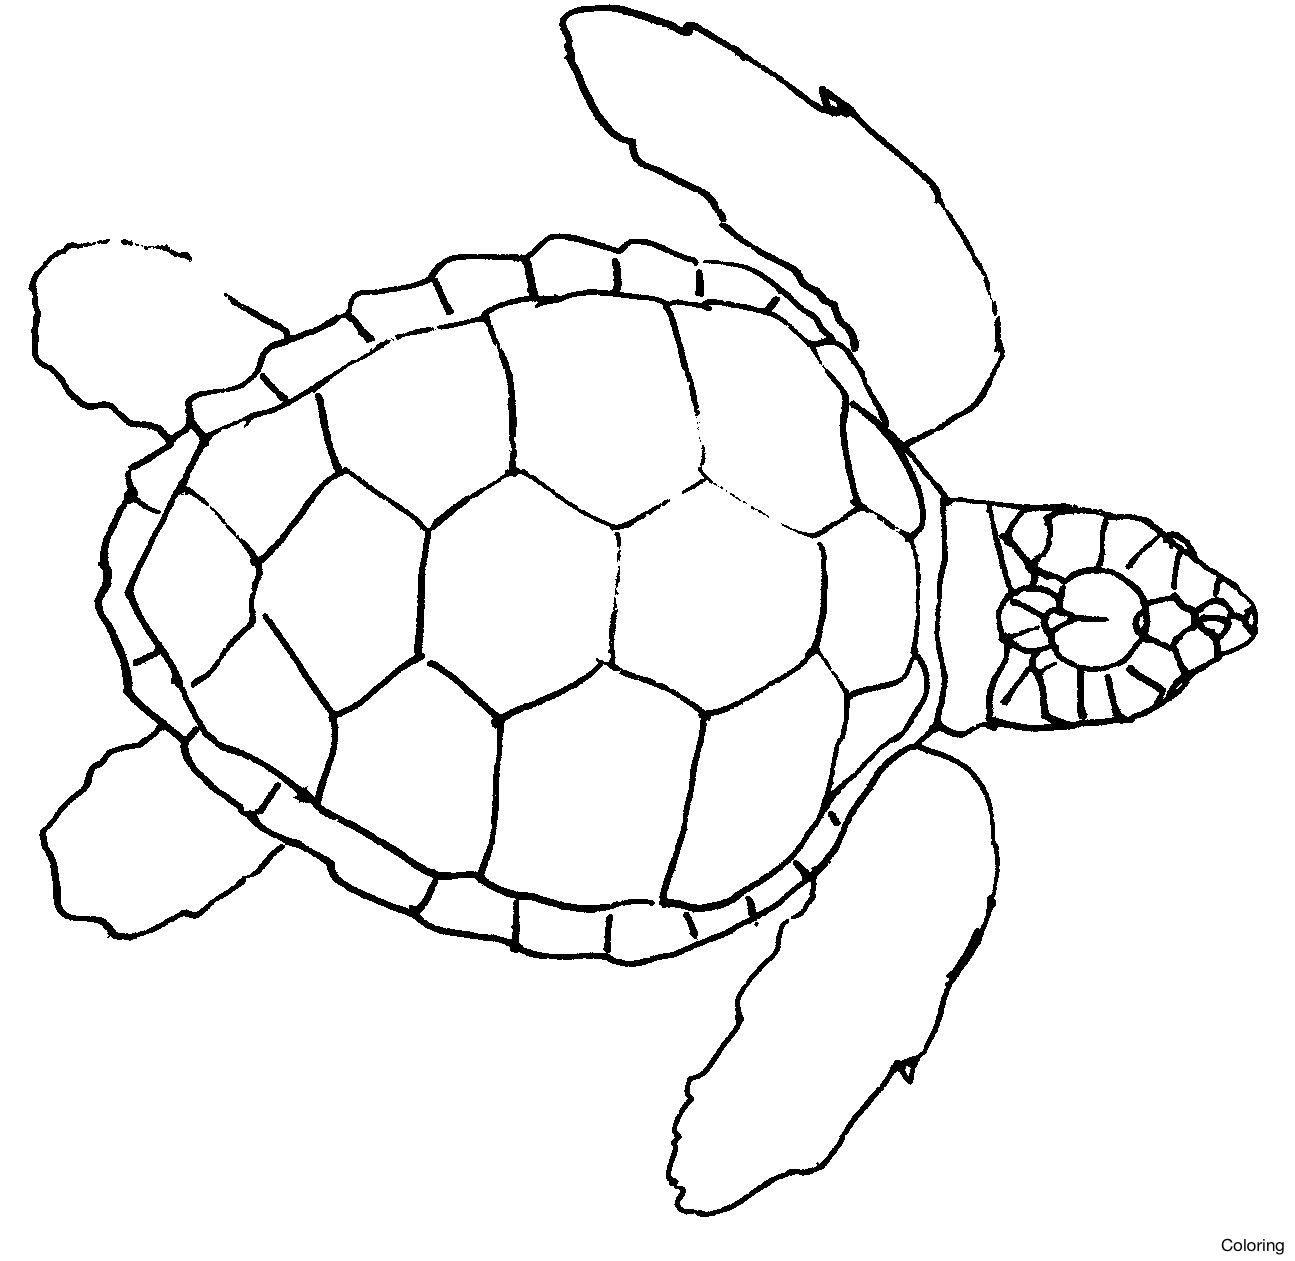 Turtle Line Drawing At Getdrawings